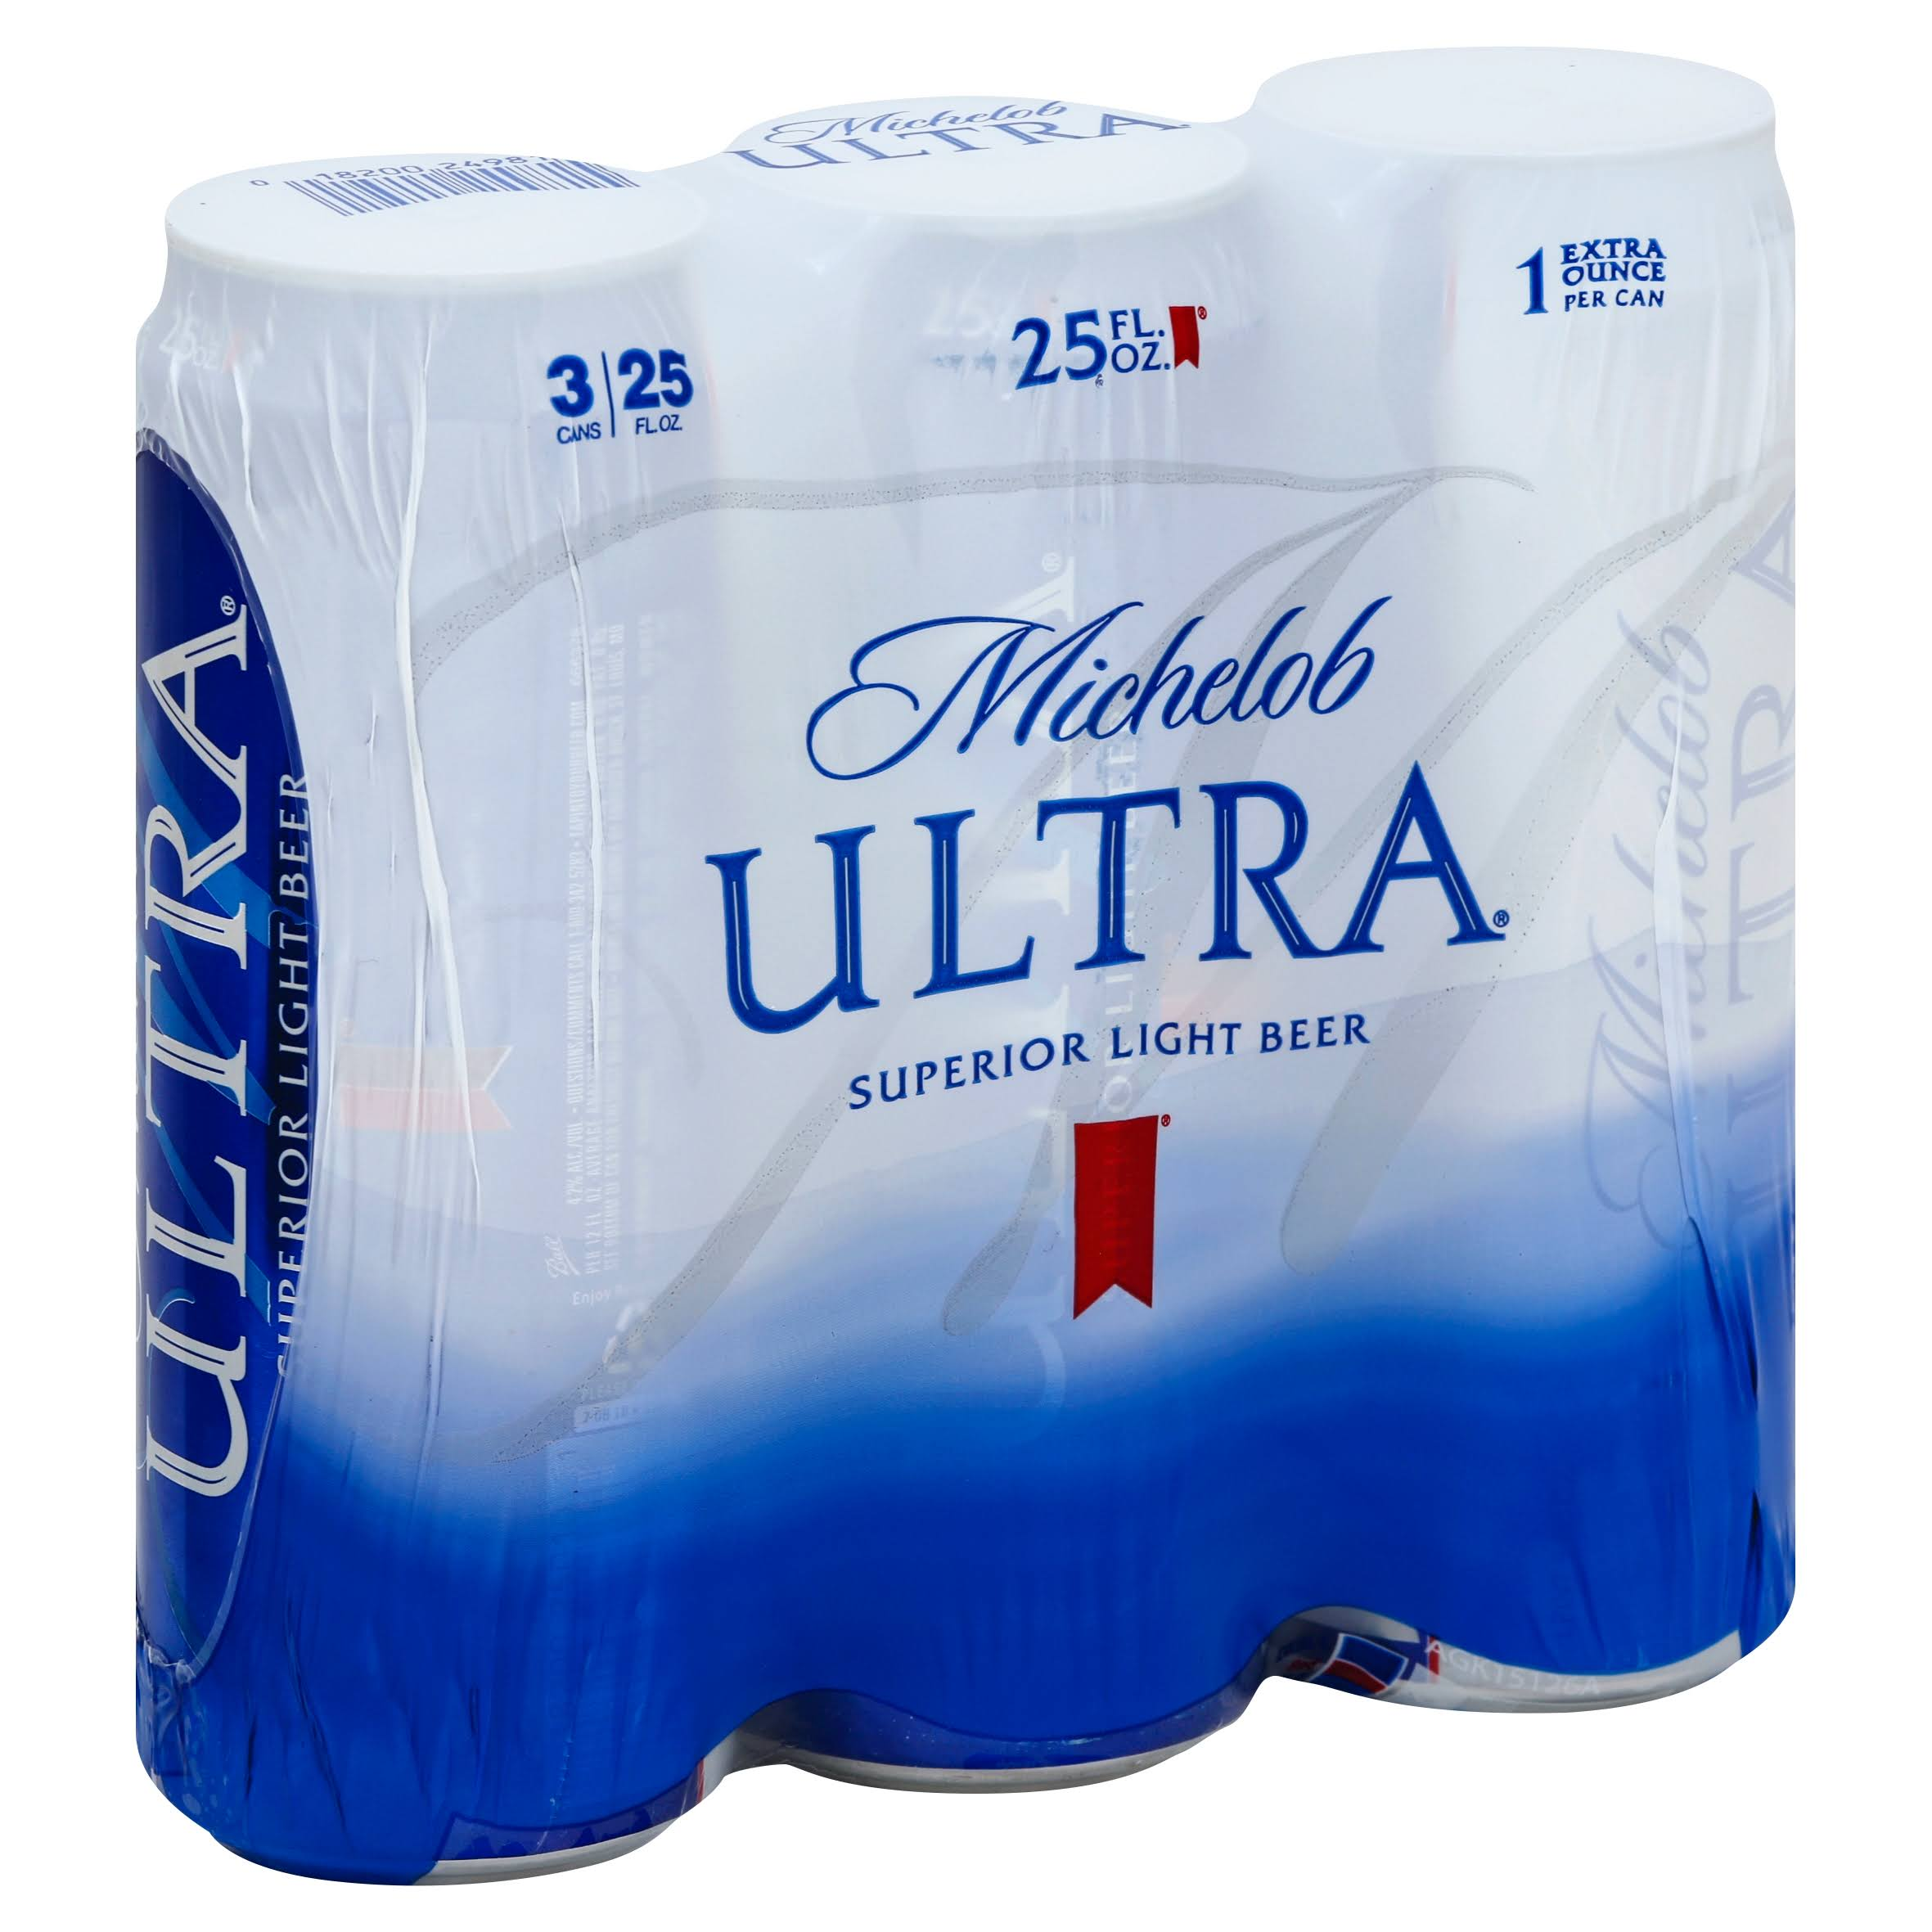 Michelob Ultra Beer - 3 x 25 fl oz